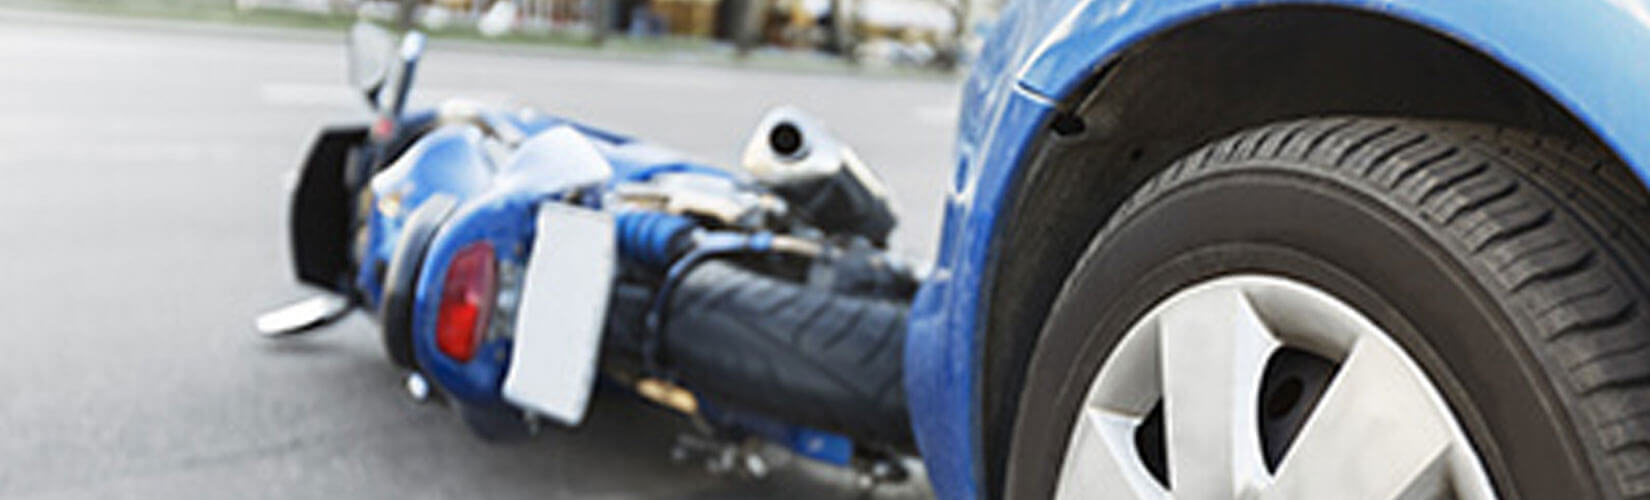 Colorado Springs Motorcycle Accident Lawyers | Motorcycle